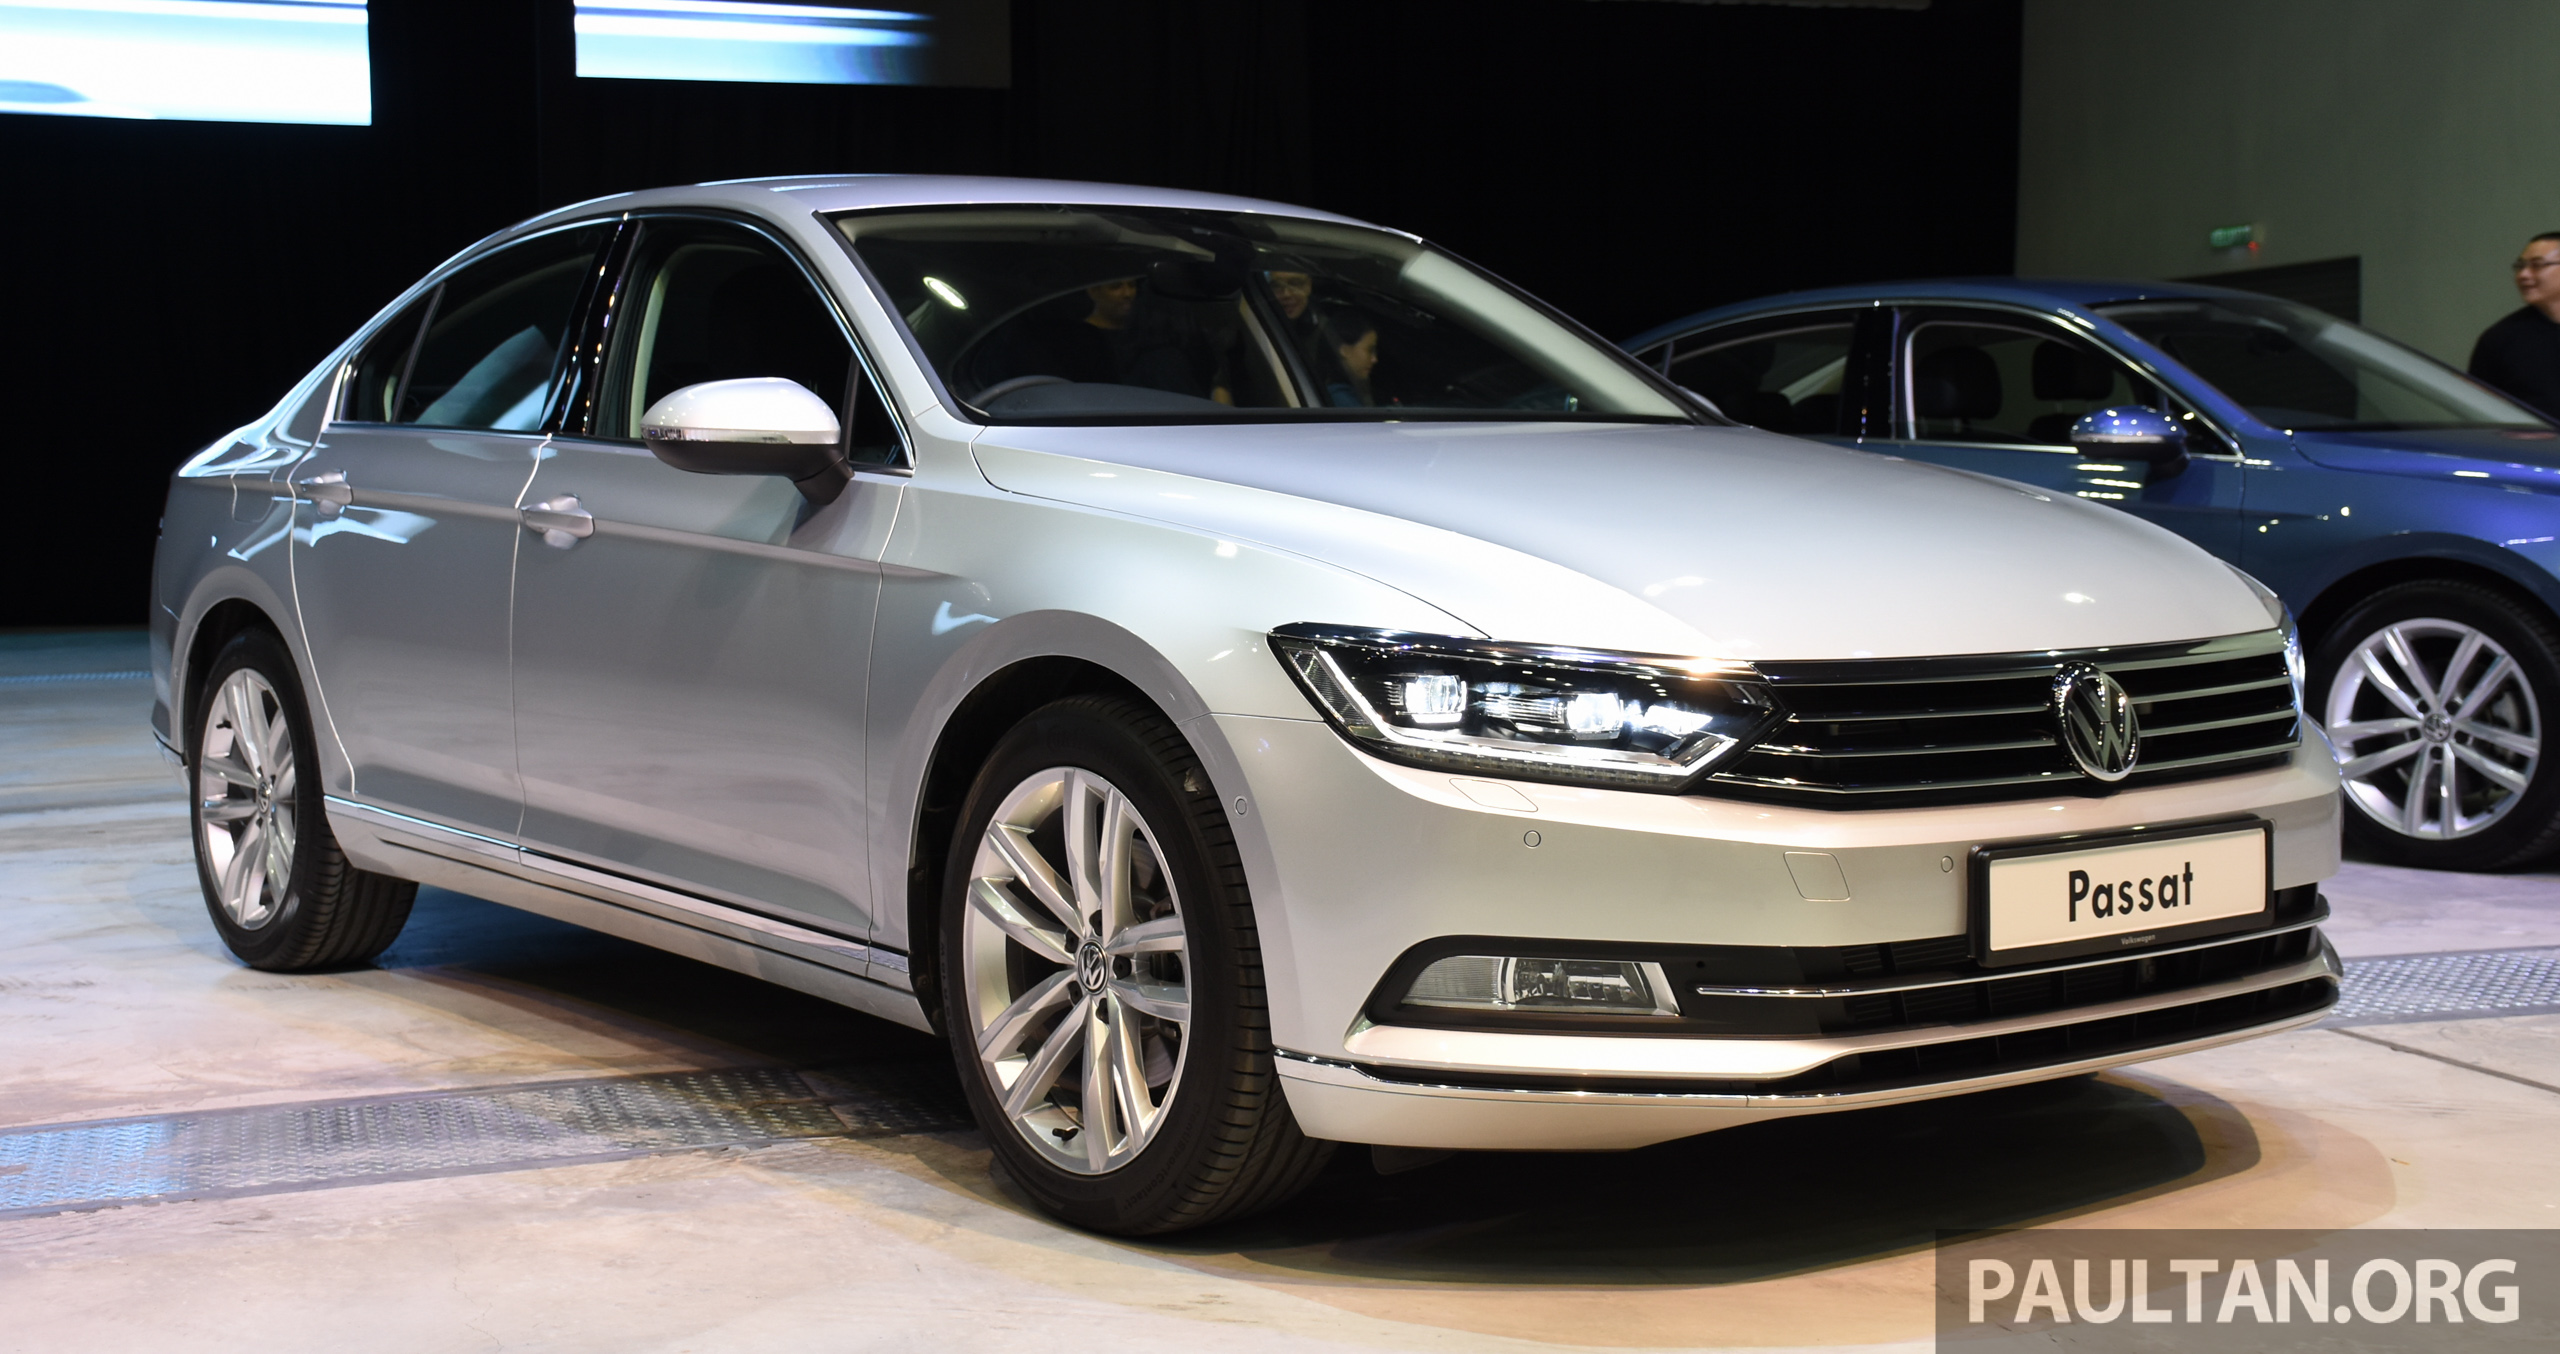 b8 volkswagen passat officially launched in malaysia. Black Bedroom Furniture Sets. Home Design Ideas